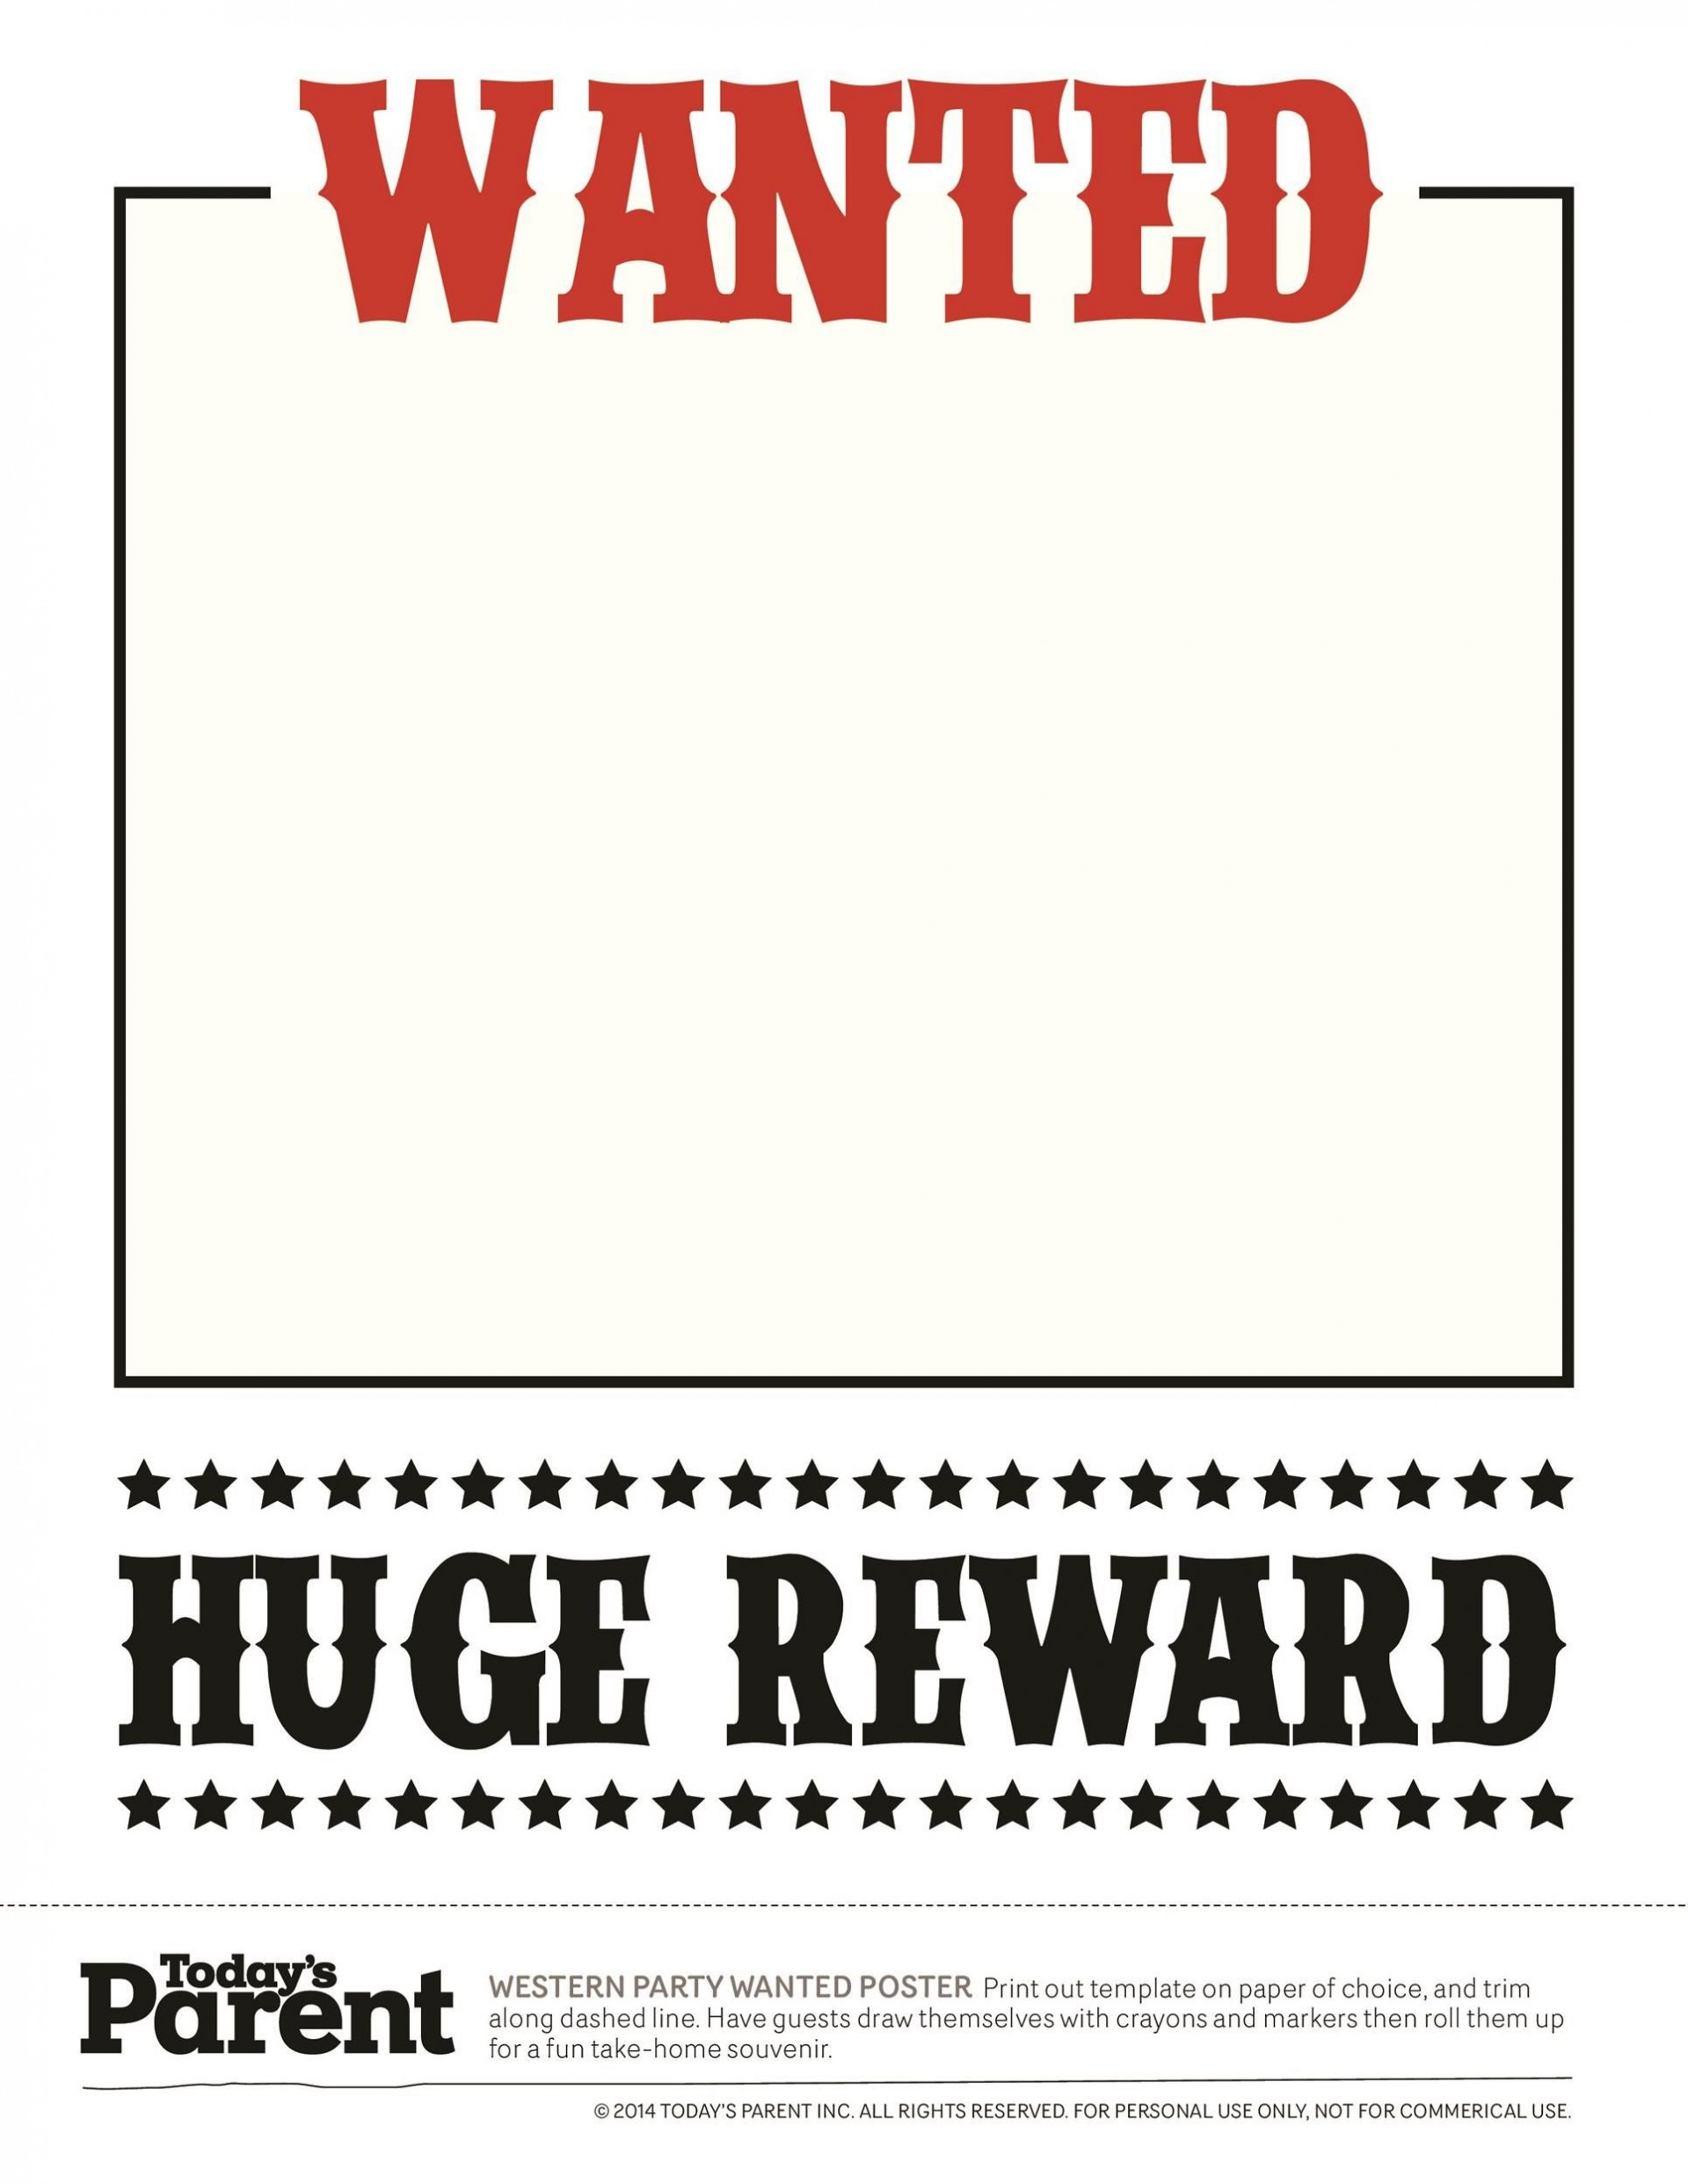 003 Wonderful Wanted Poster Template Microsoft Word Image  Western Most1920